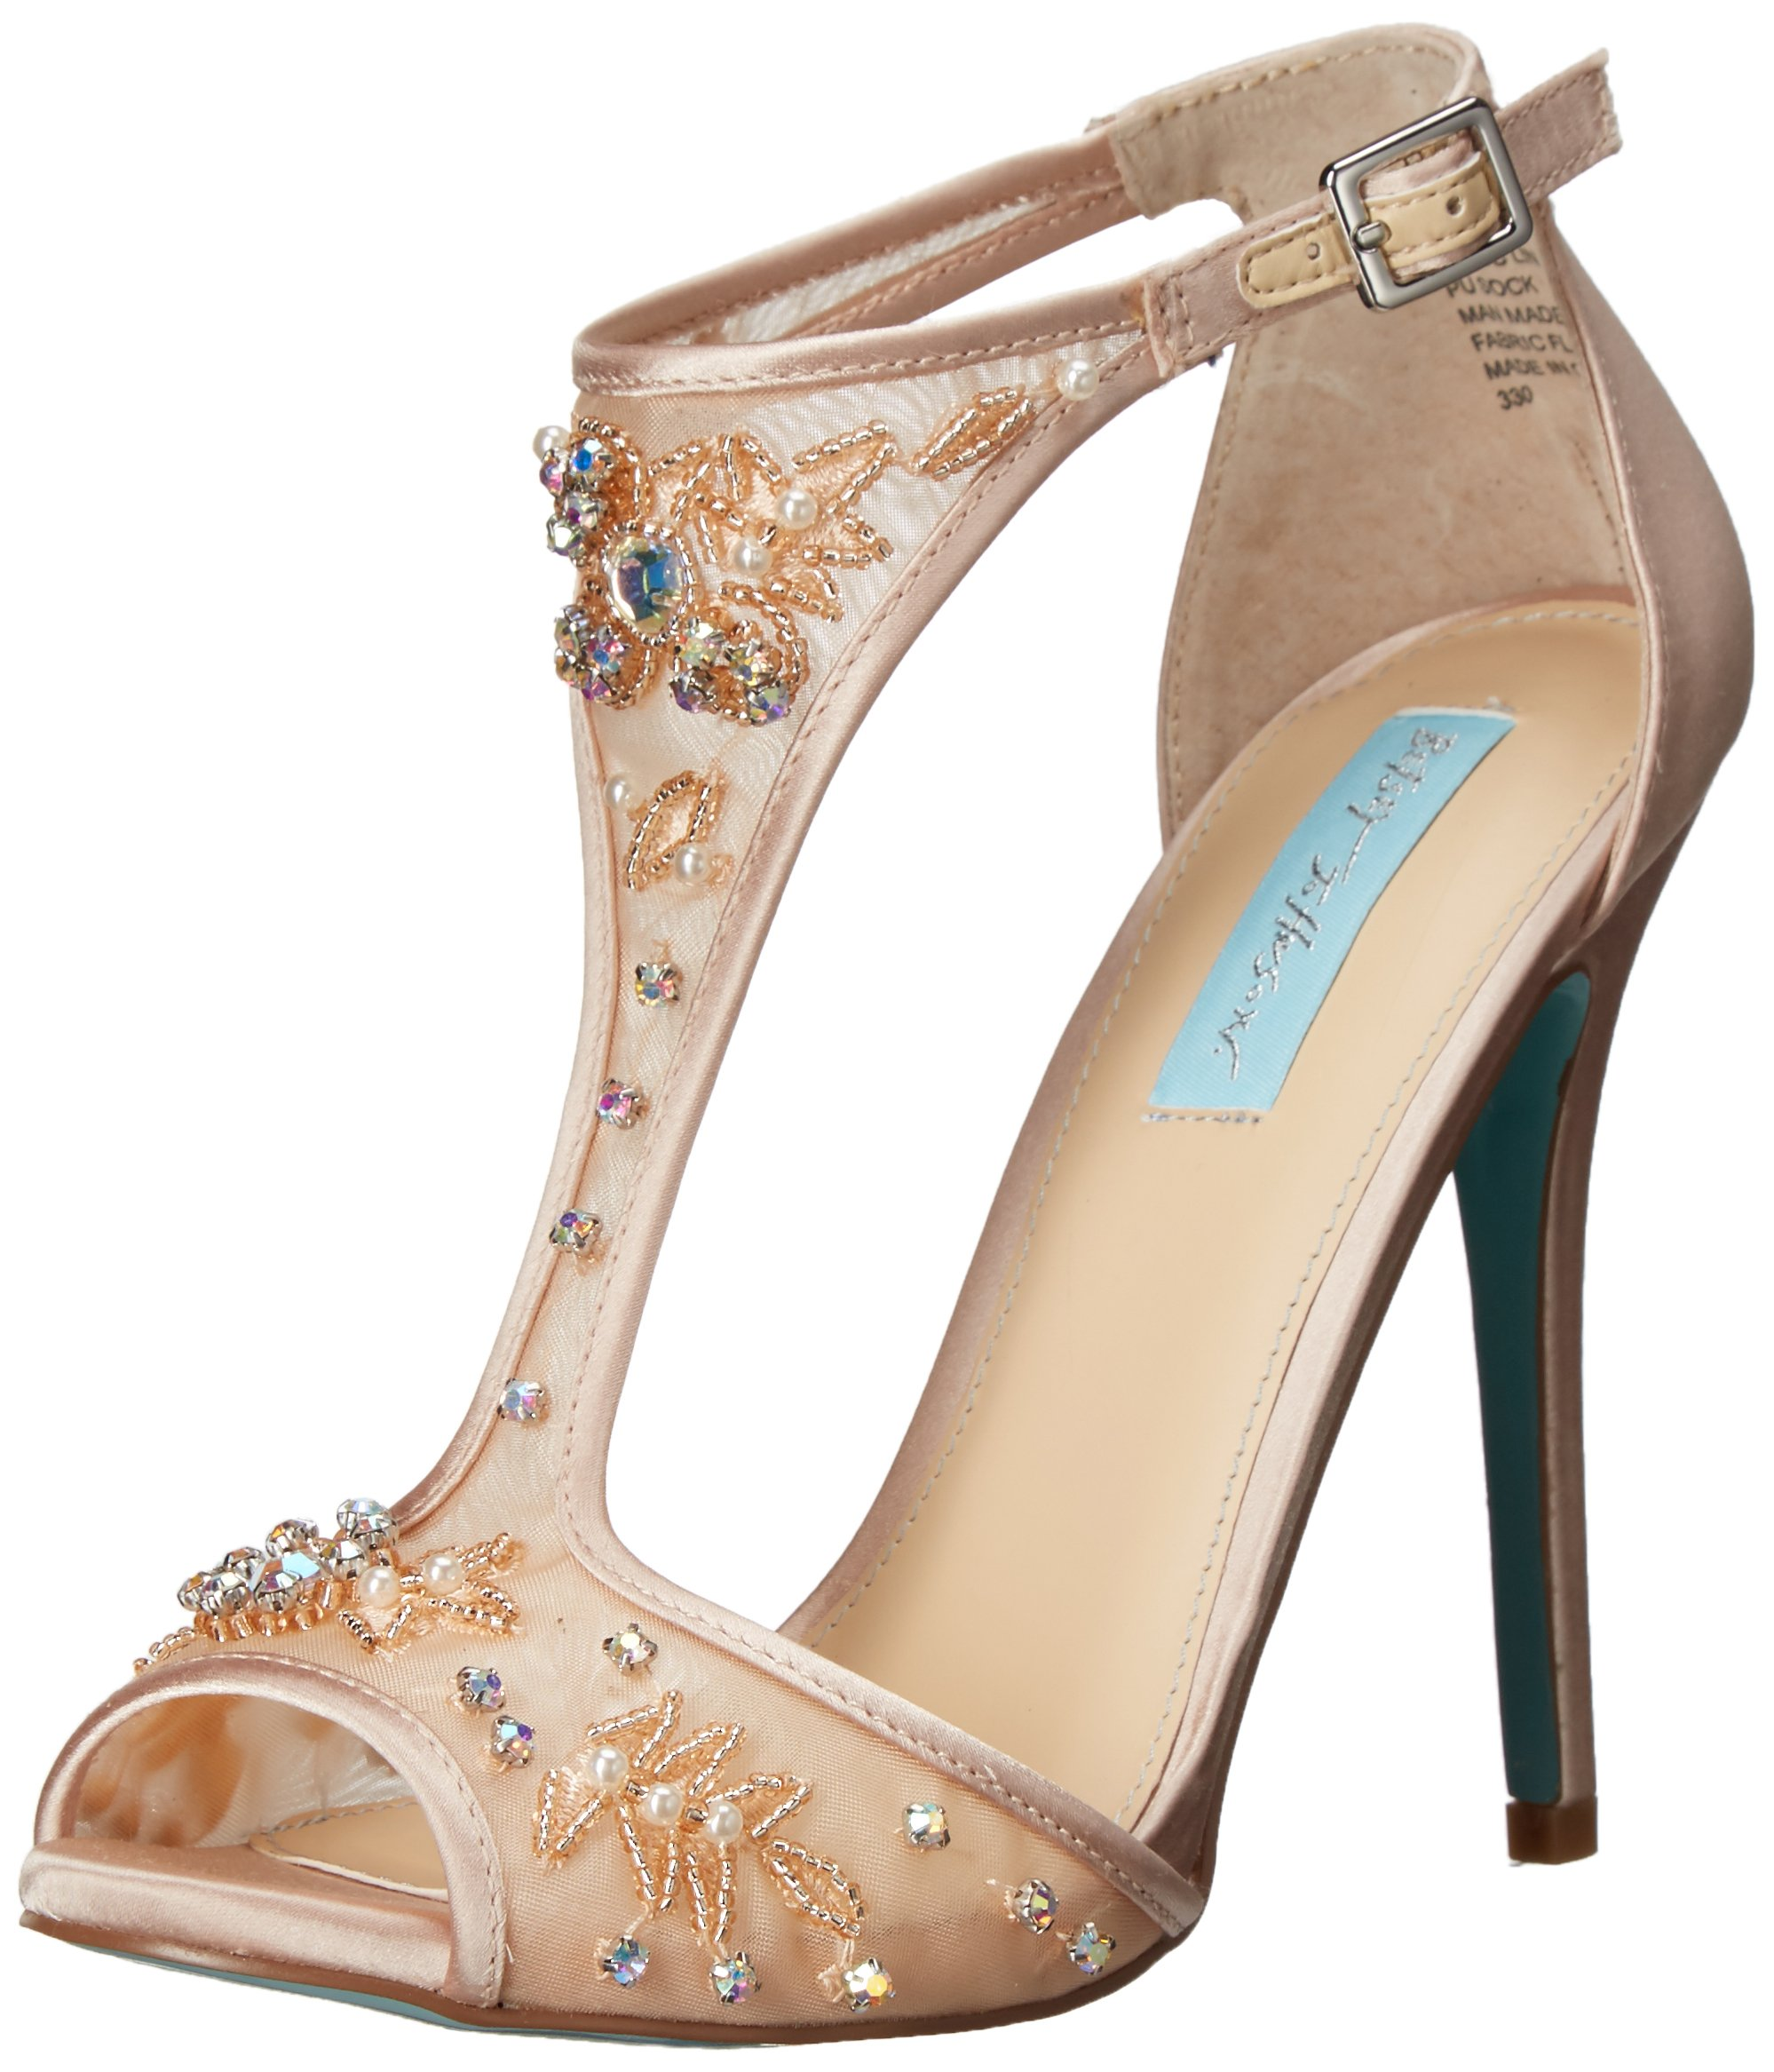 Blue by Betsey Johnson Women's SB-Holly Dress Sandal, Champagne, 8.5 M US by Betsey Johnson